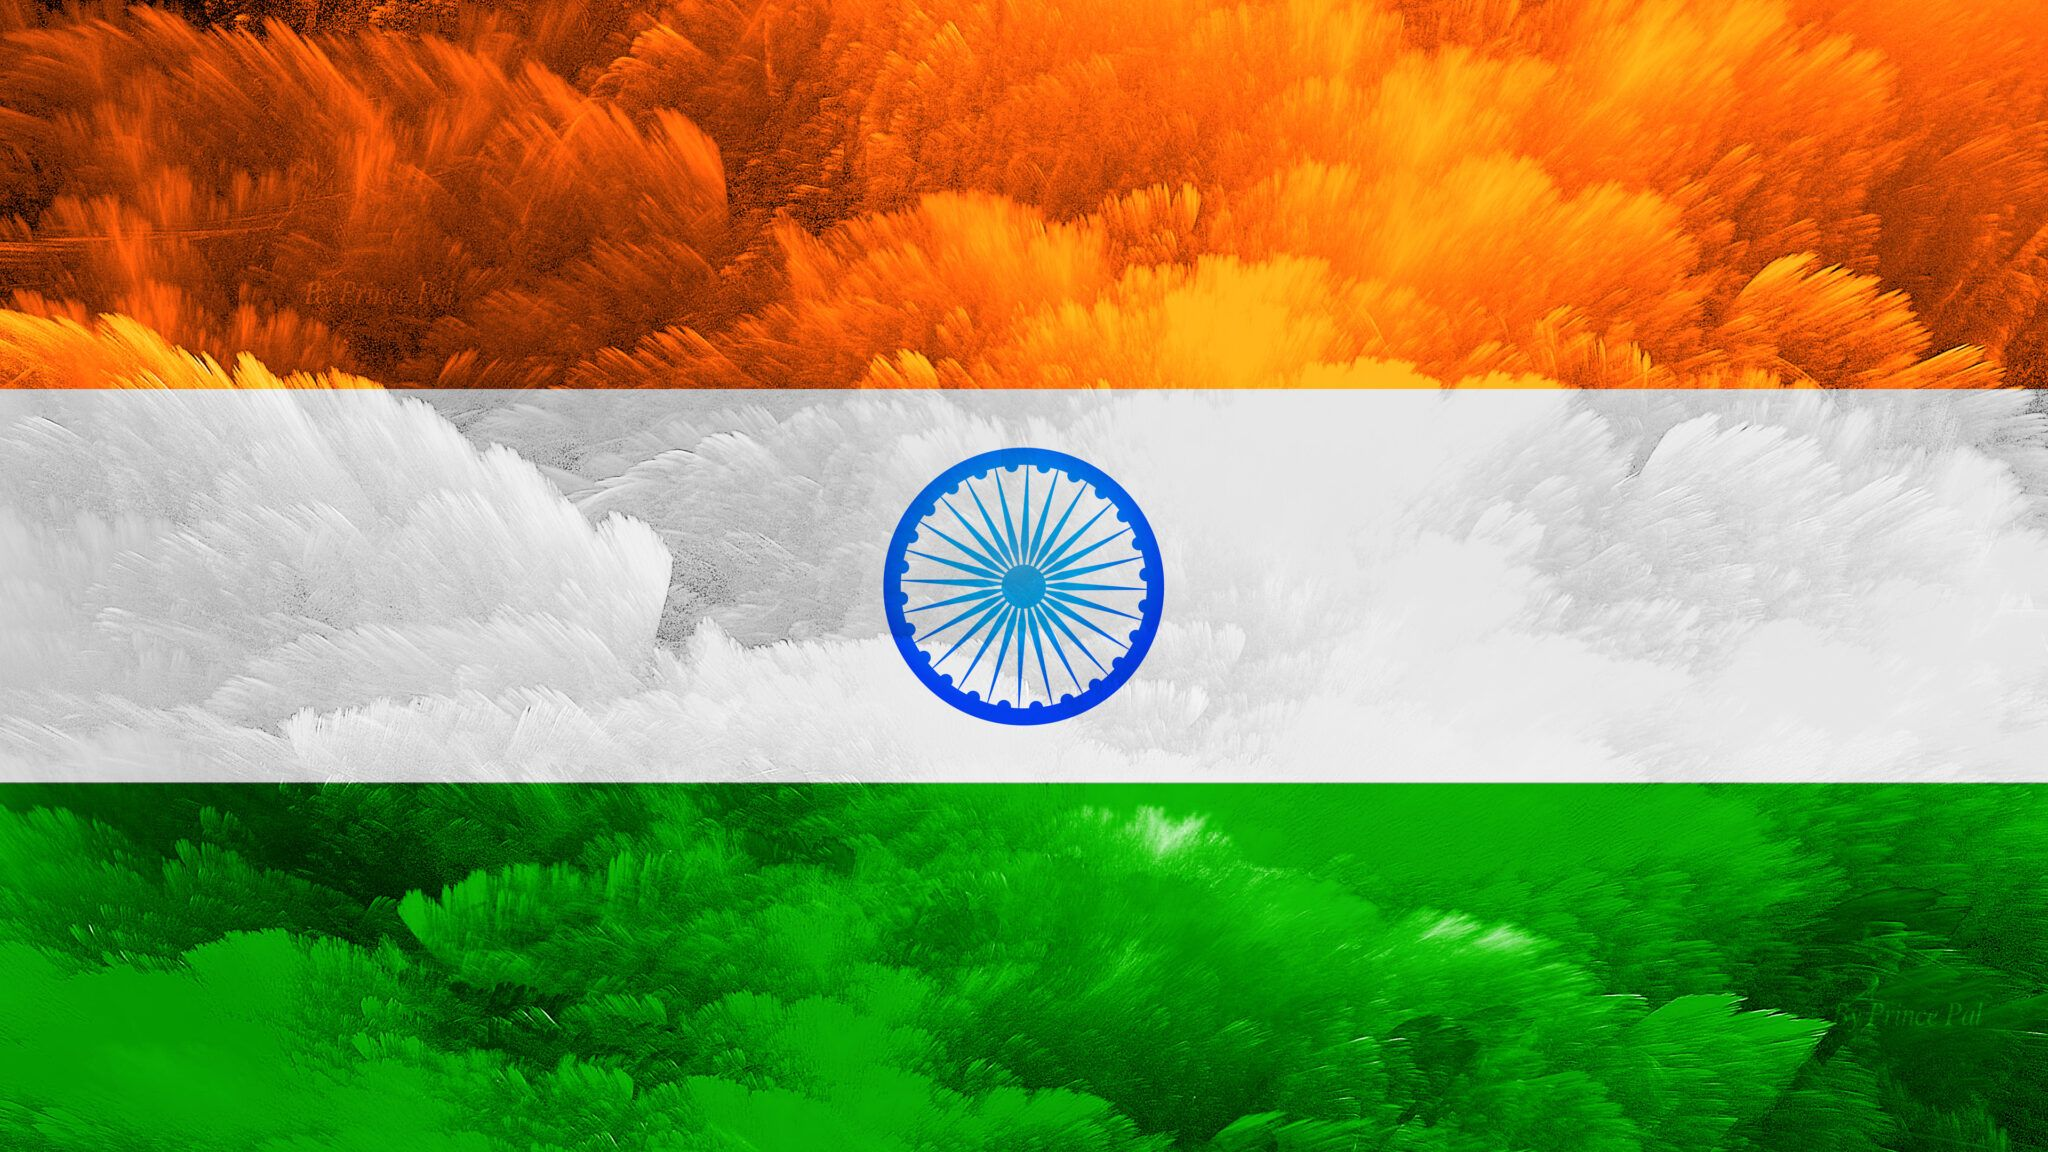 Indian Flag Images Photos Pictures And Wallpapers Free Download Atulhost Republic Day Images Pictures Indian Flag Images Indian Flag Wallpaper